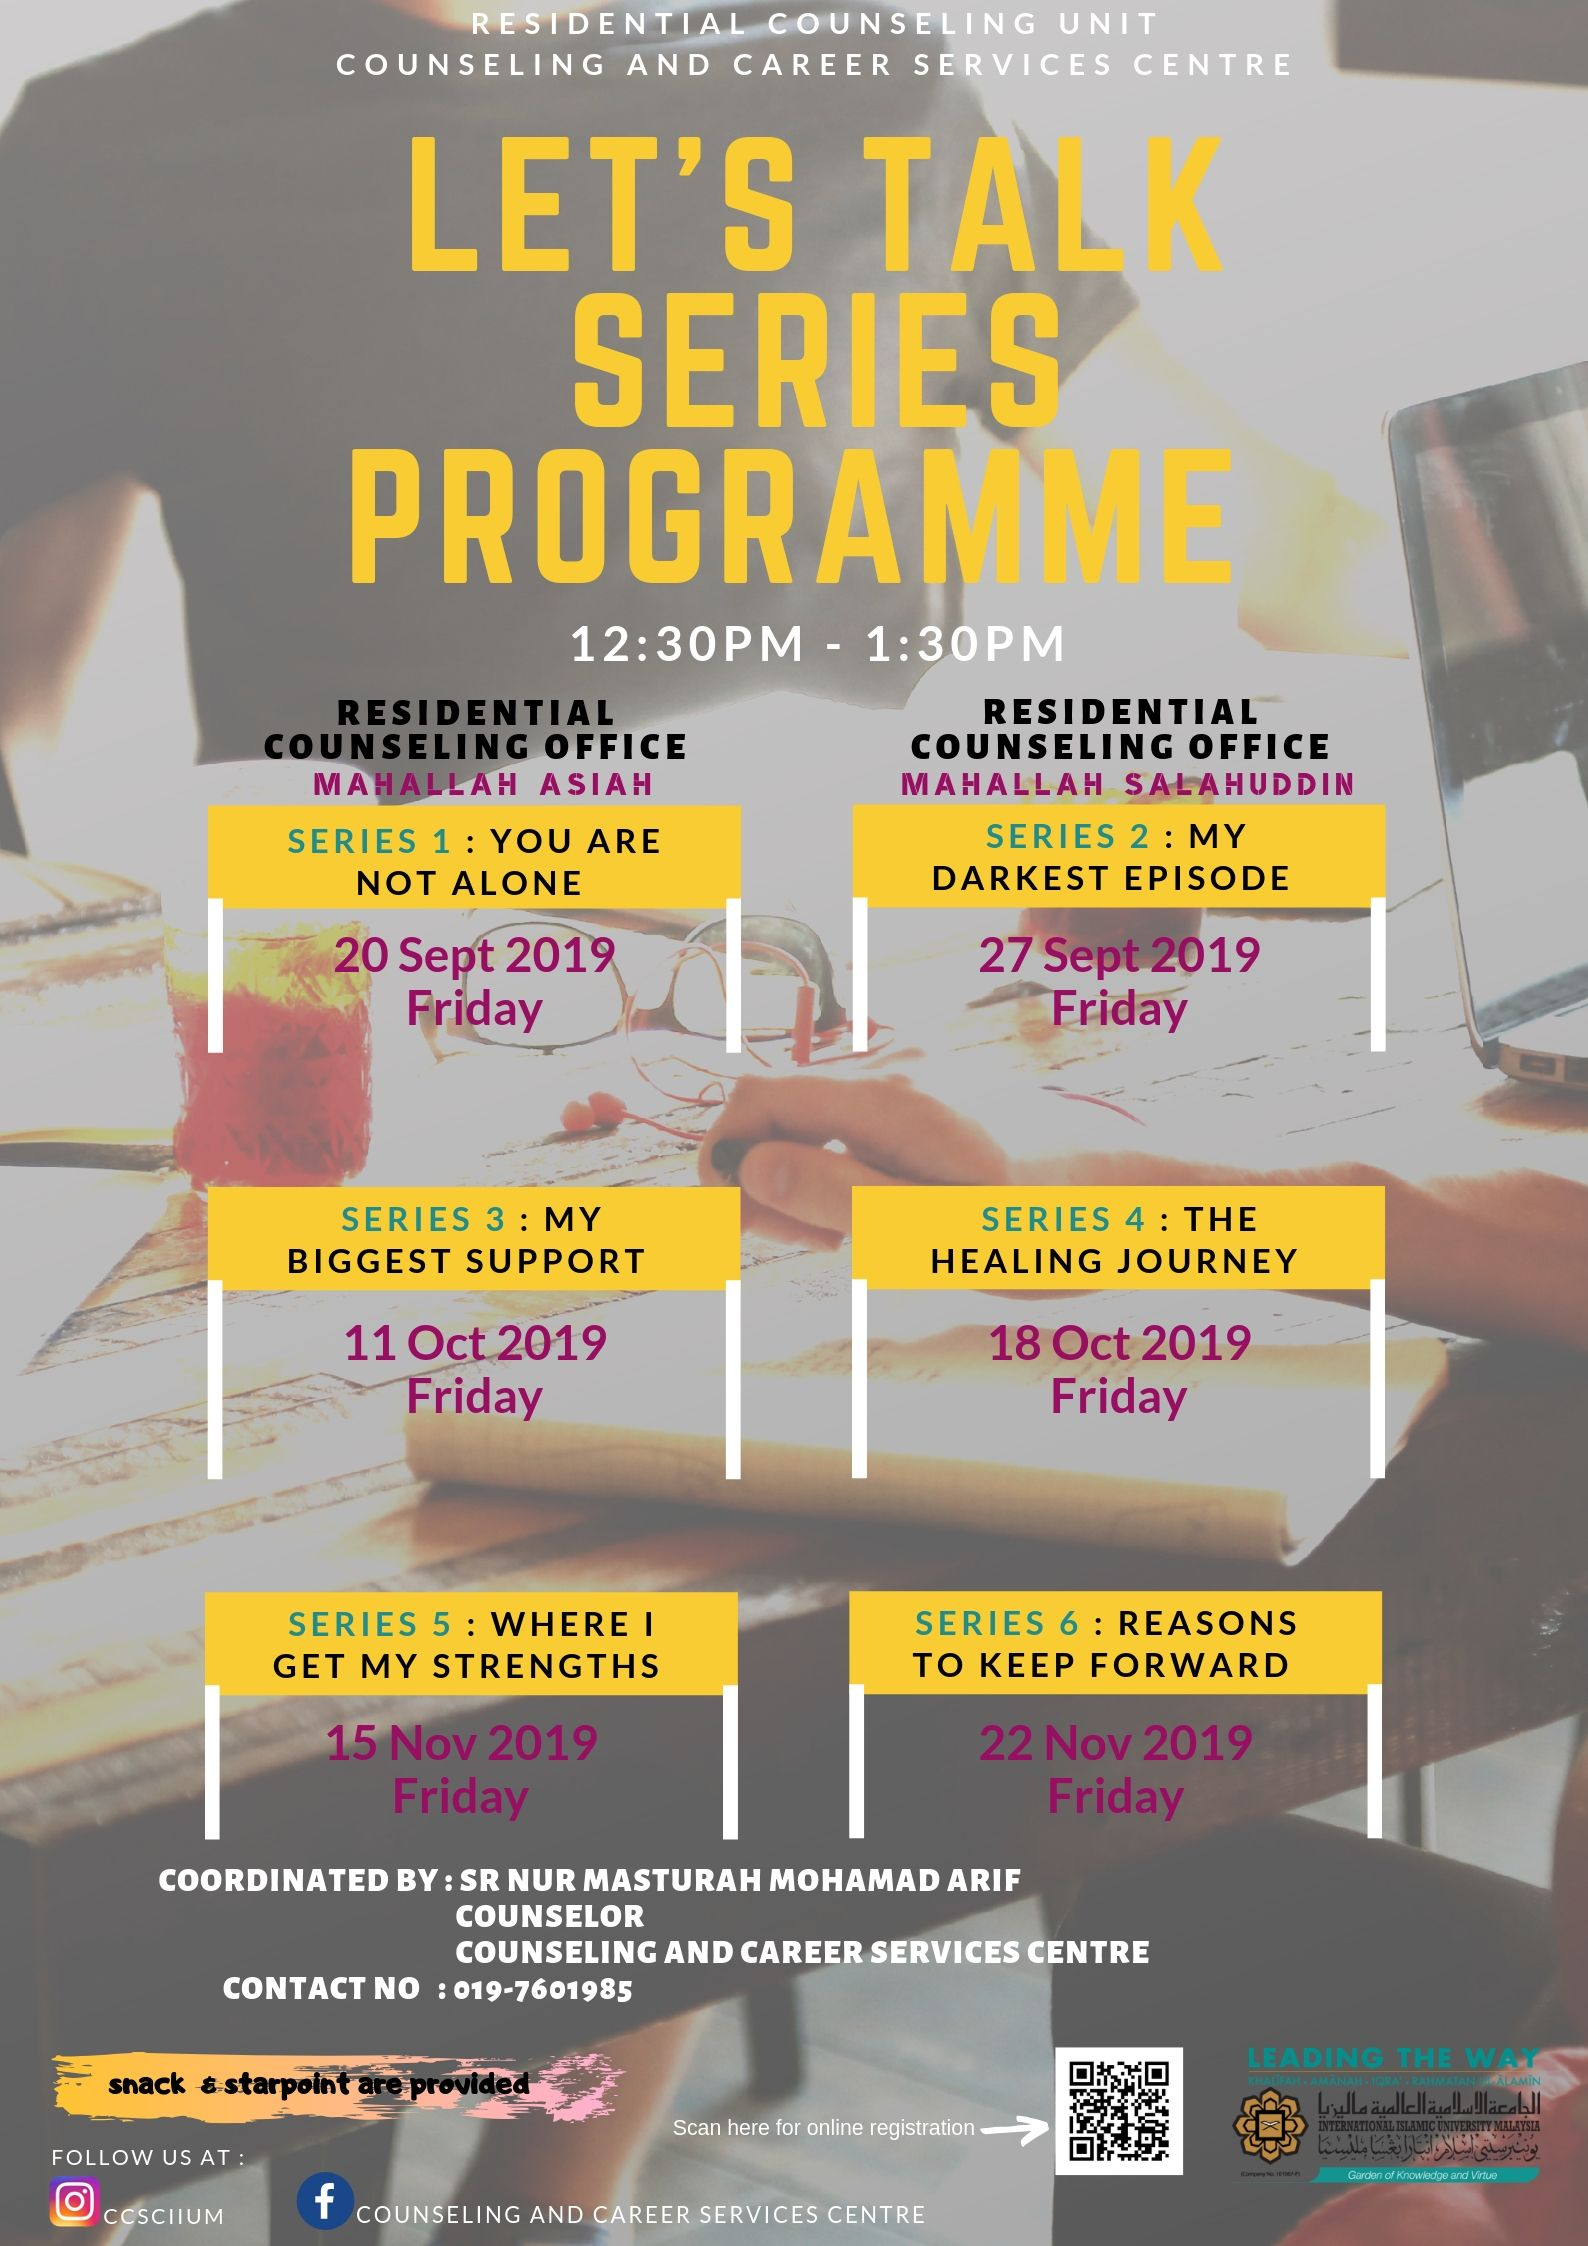 LET'S TALK SERIES PROGRAMME